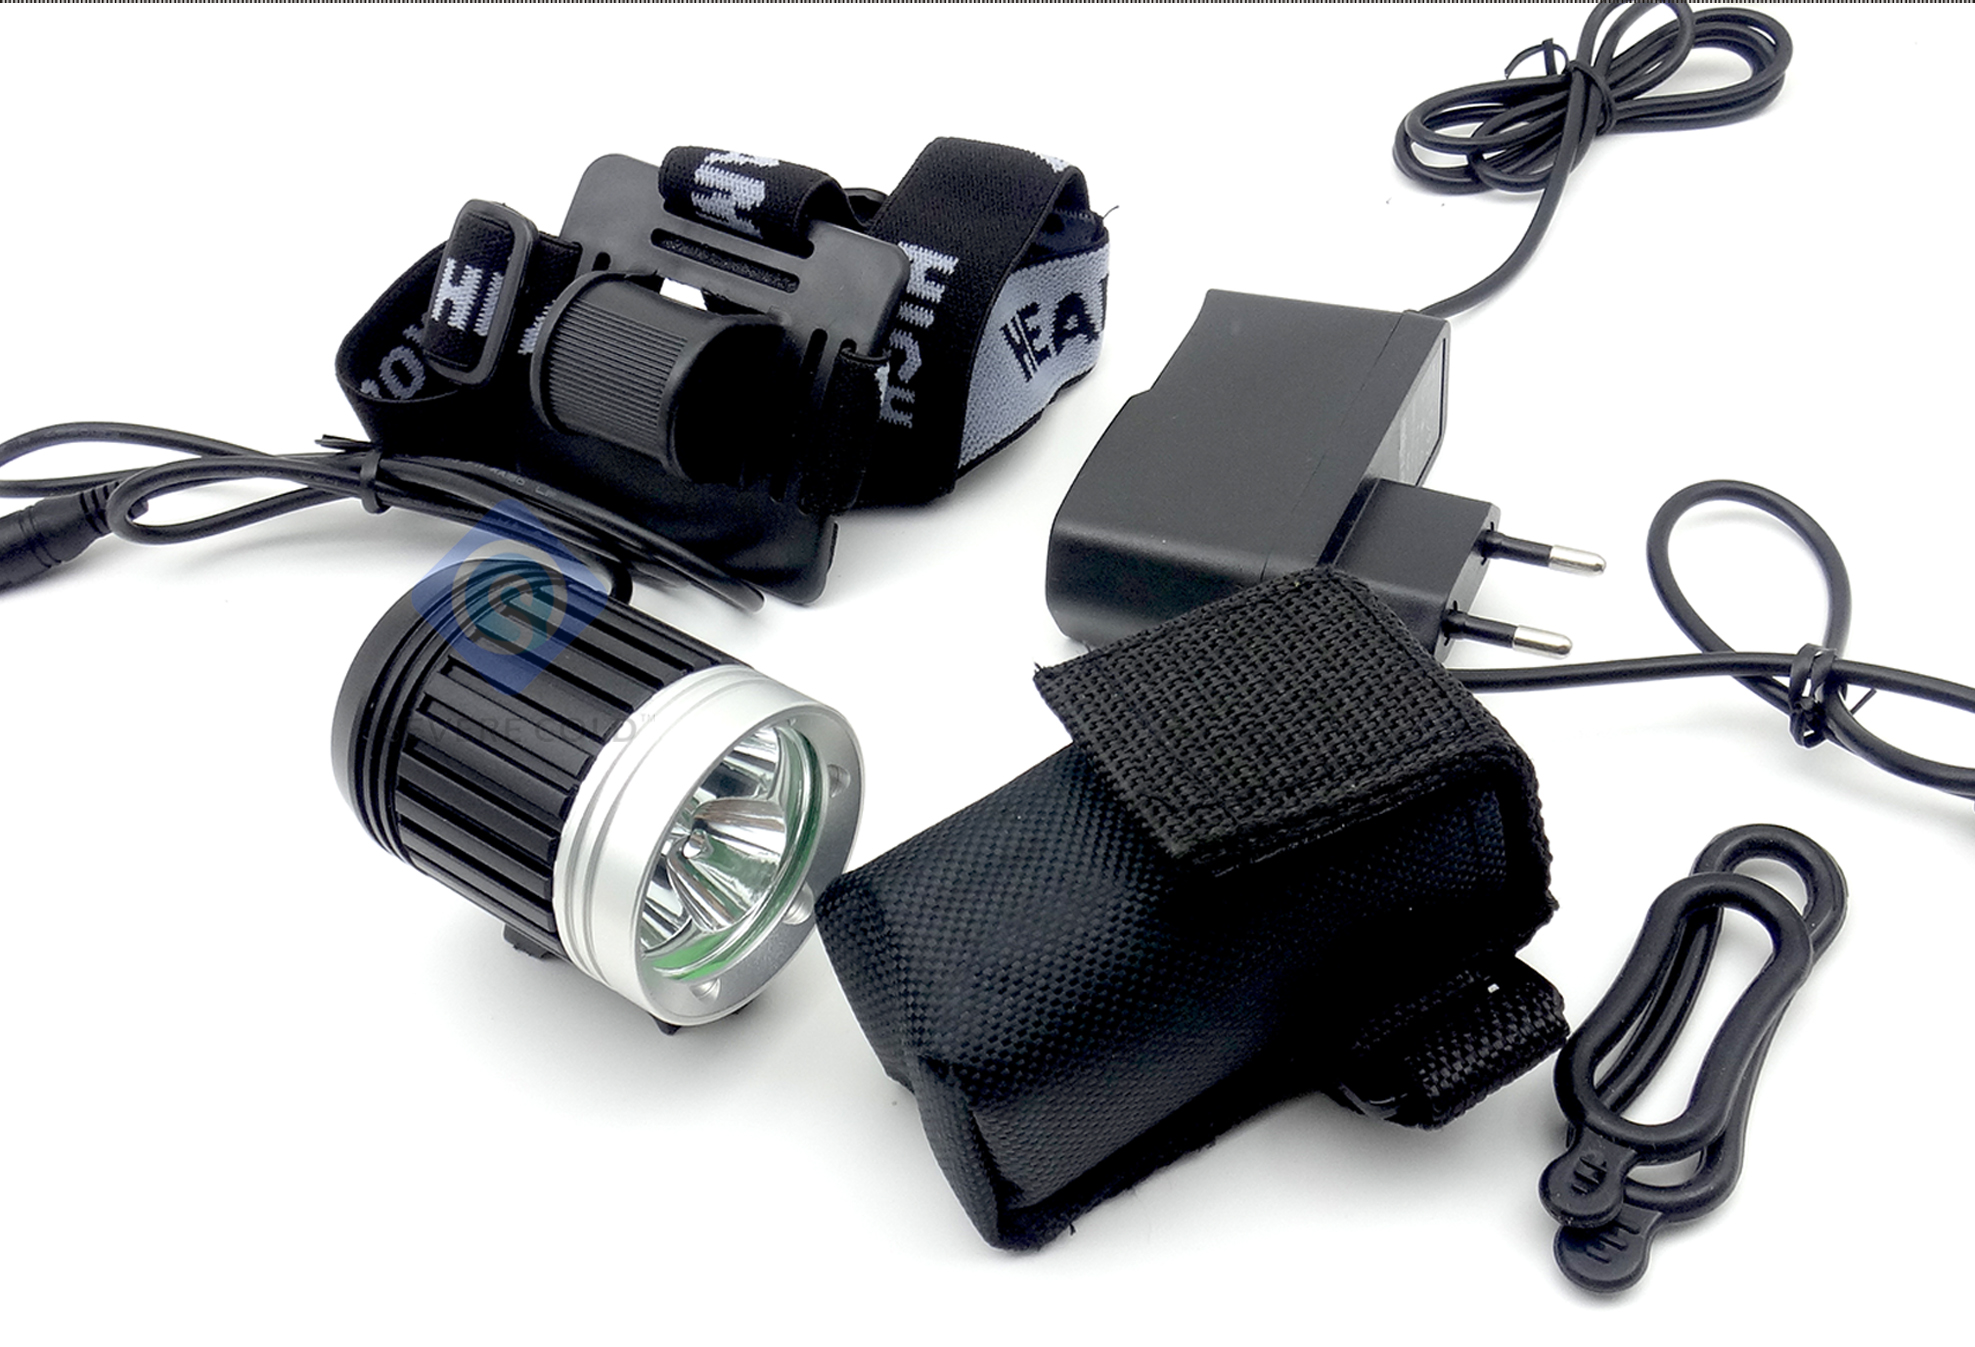 T6 White LED Waterproof Aluminum Alloy Front Bicycle Light Bike Headlamp Headlight Lamp Cycling Lights Set